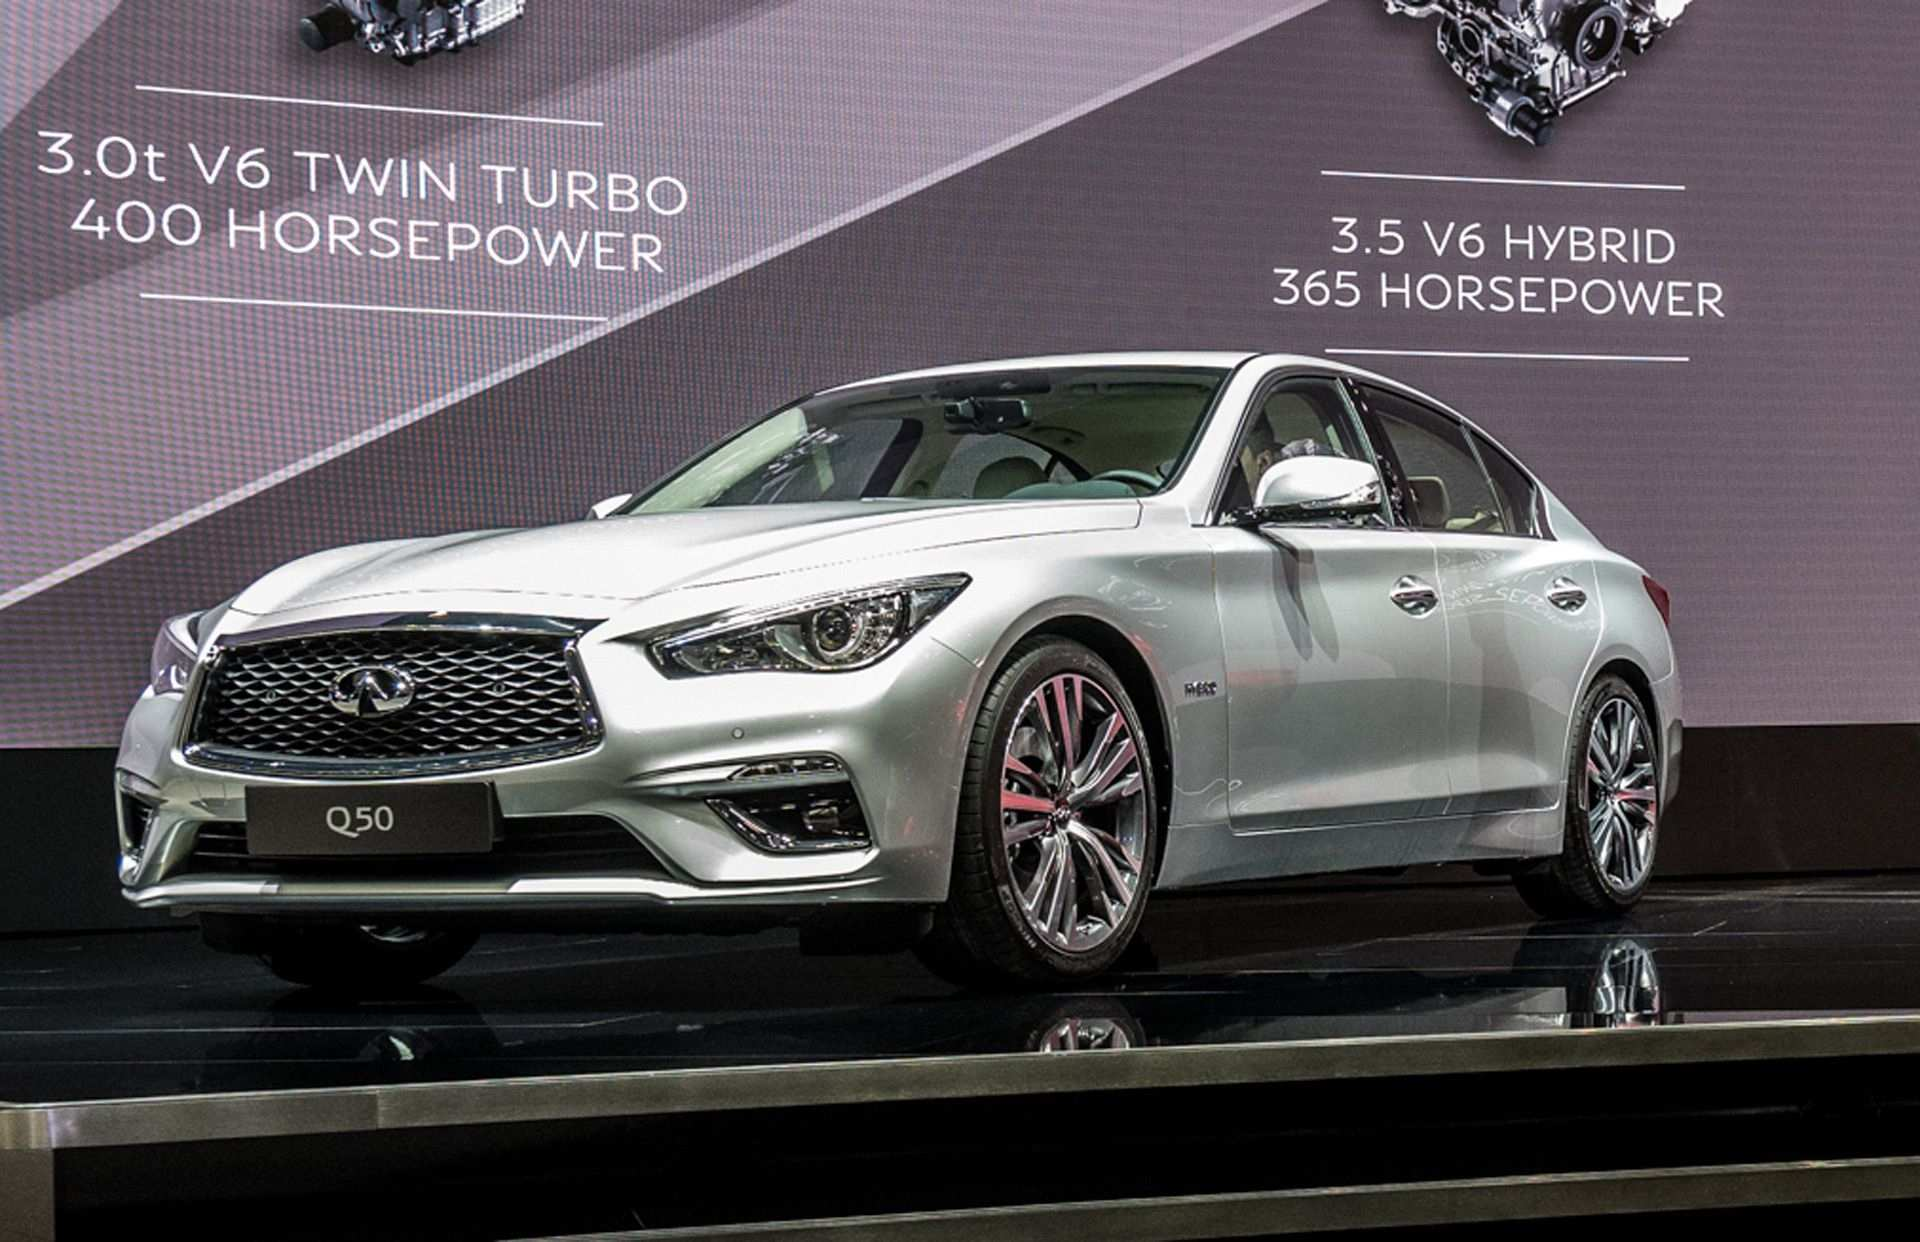 59 All New 2020 Infiniti Qx50 Exterior Engine for 2020 Infiniti Qx50 Exterior